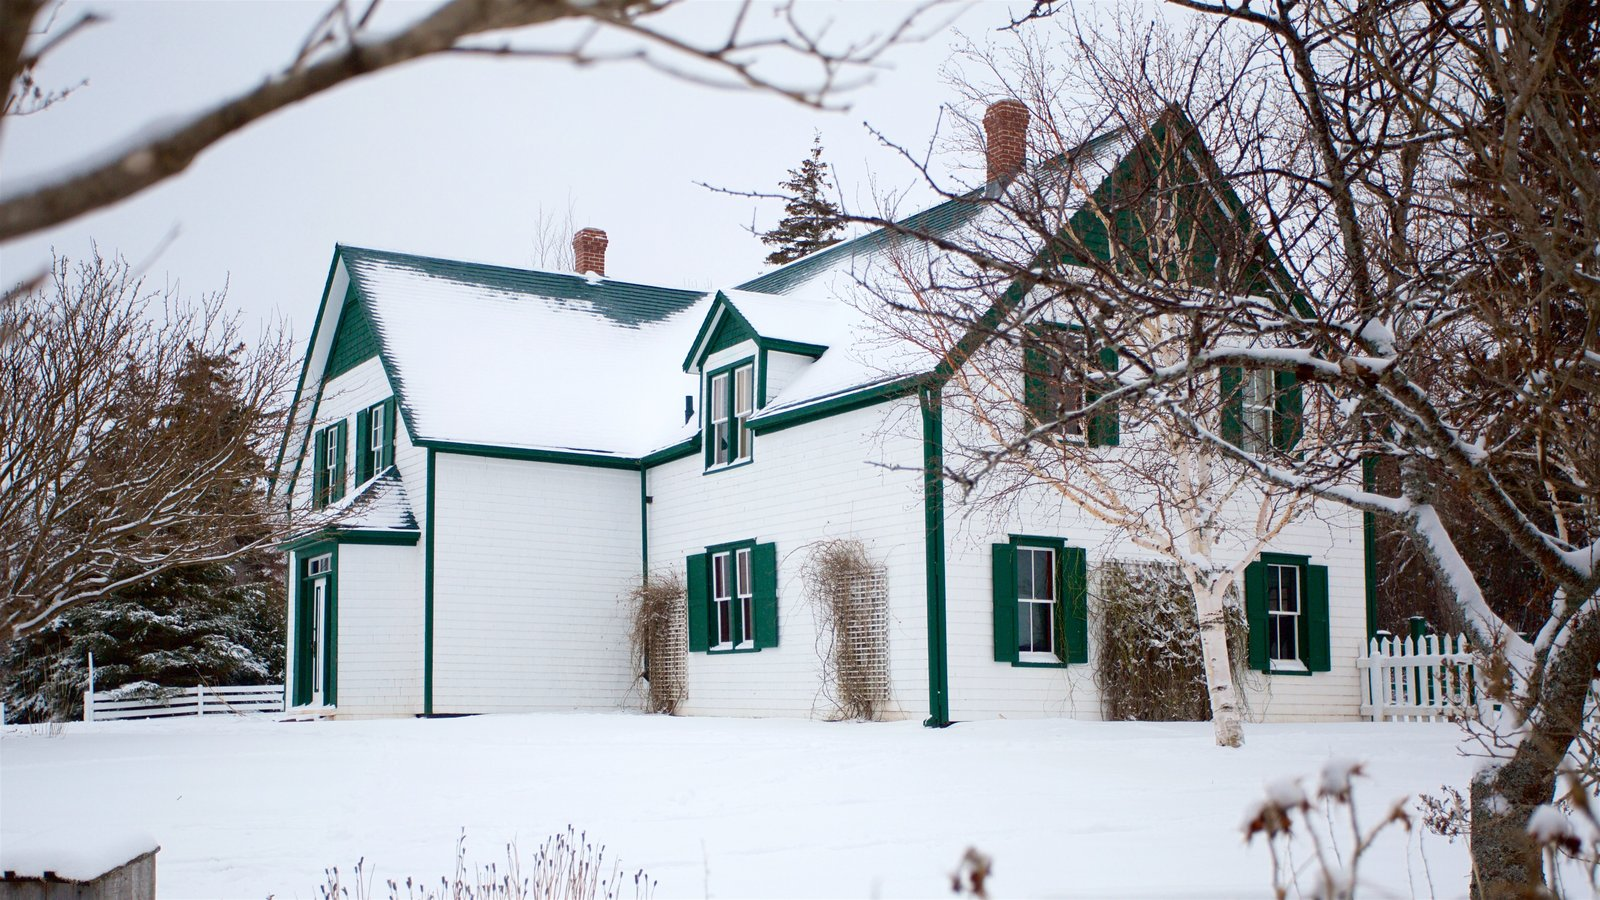 Green Gables featuring a house and snow